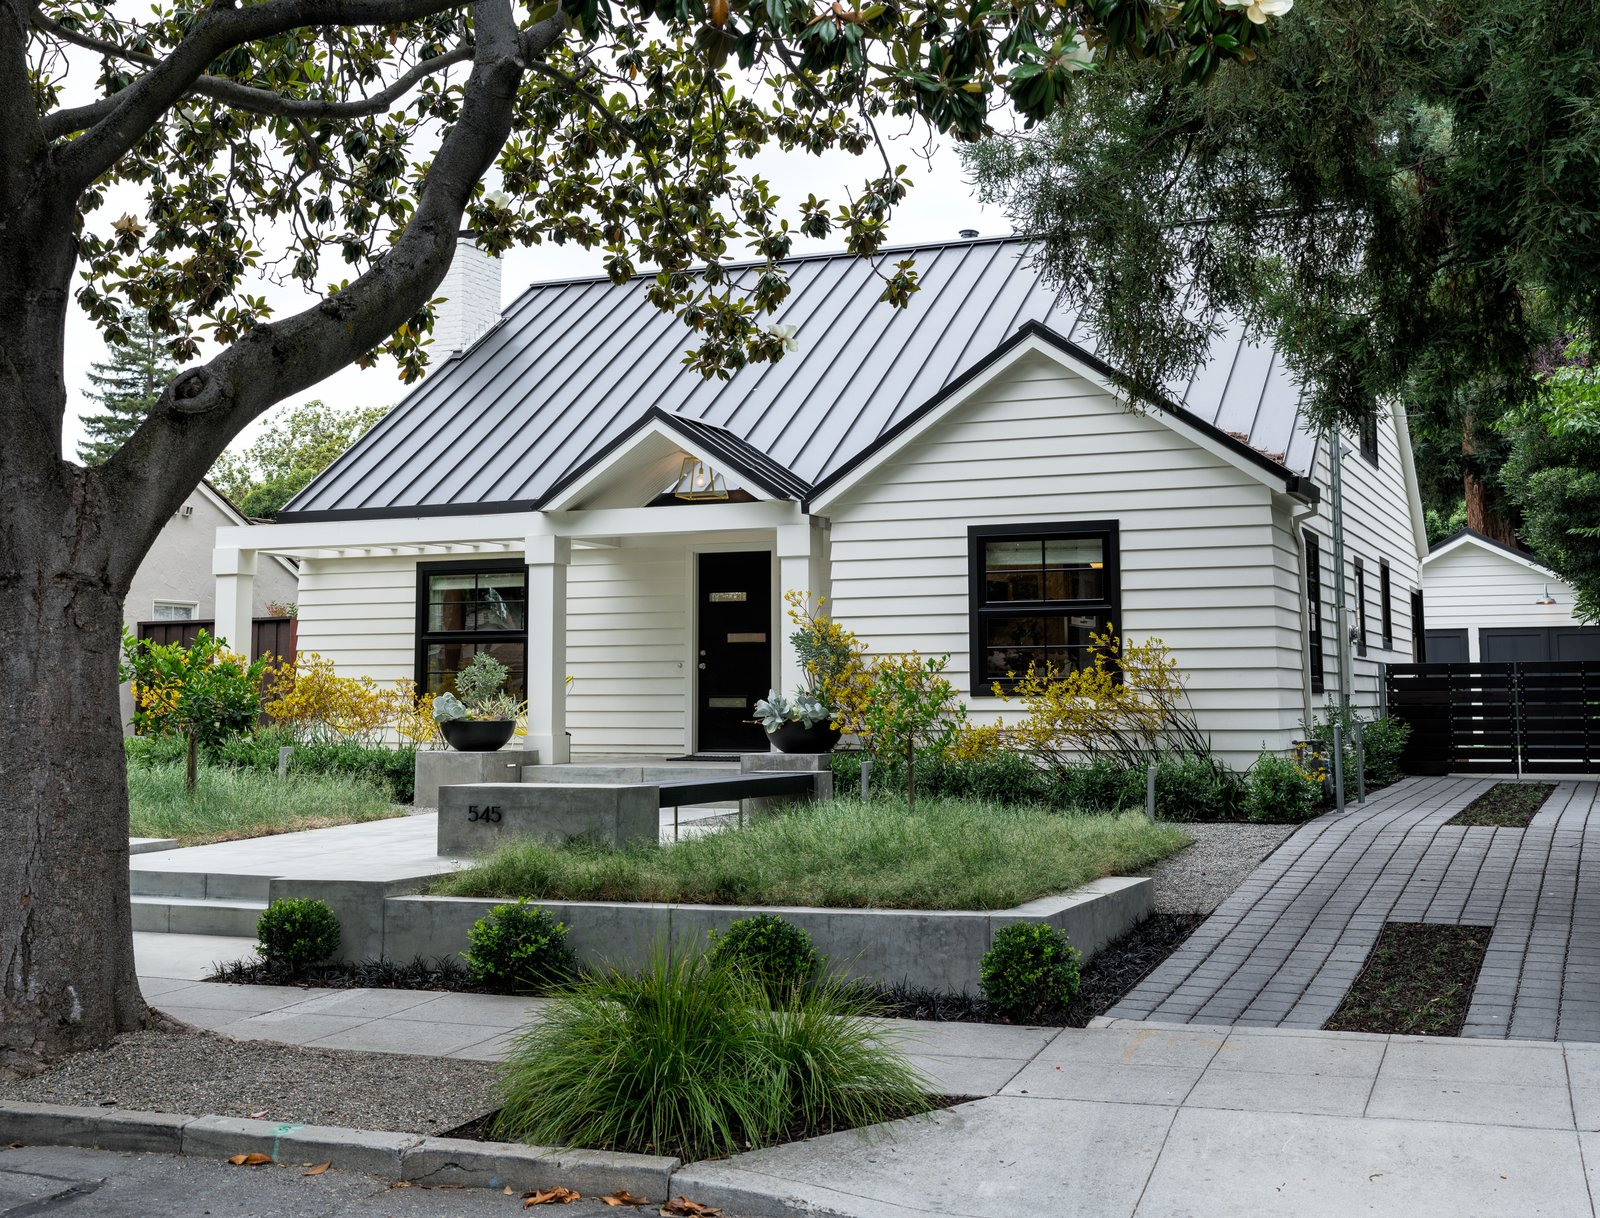 Parking and arrival on a porus paved drive  Refreshing Bungalow by Randy Thueme Design